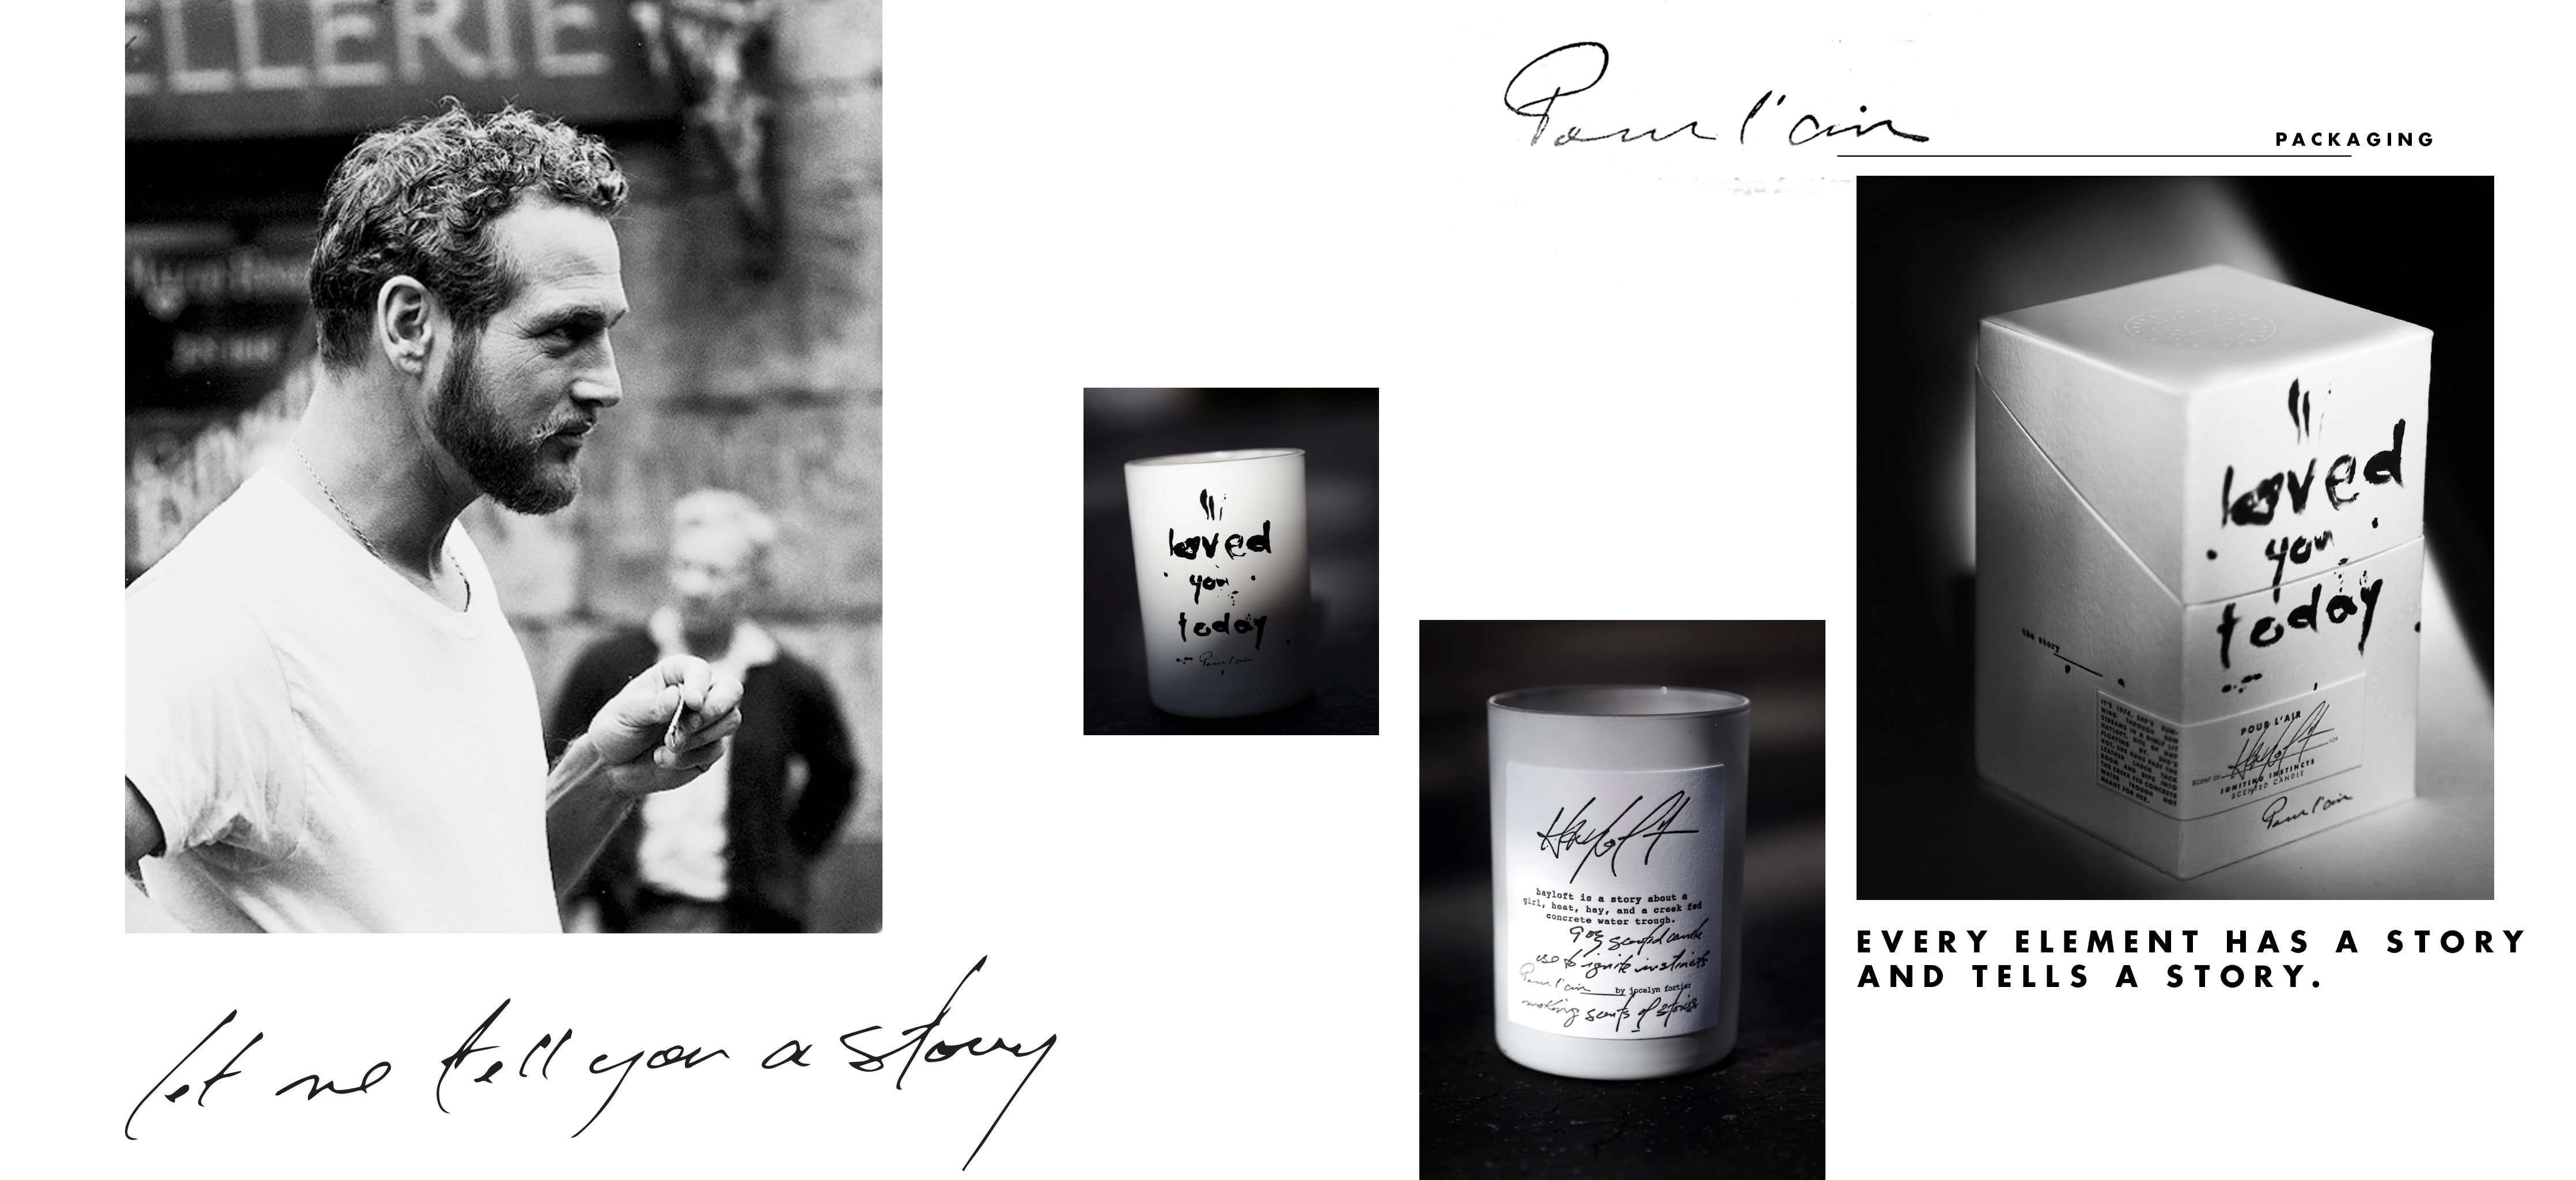 Pour l'air packaging is inspired by a young Paul Newman in a white tshirt. Letterpress packaging on cotton paper.